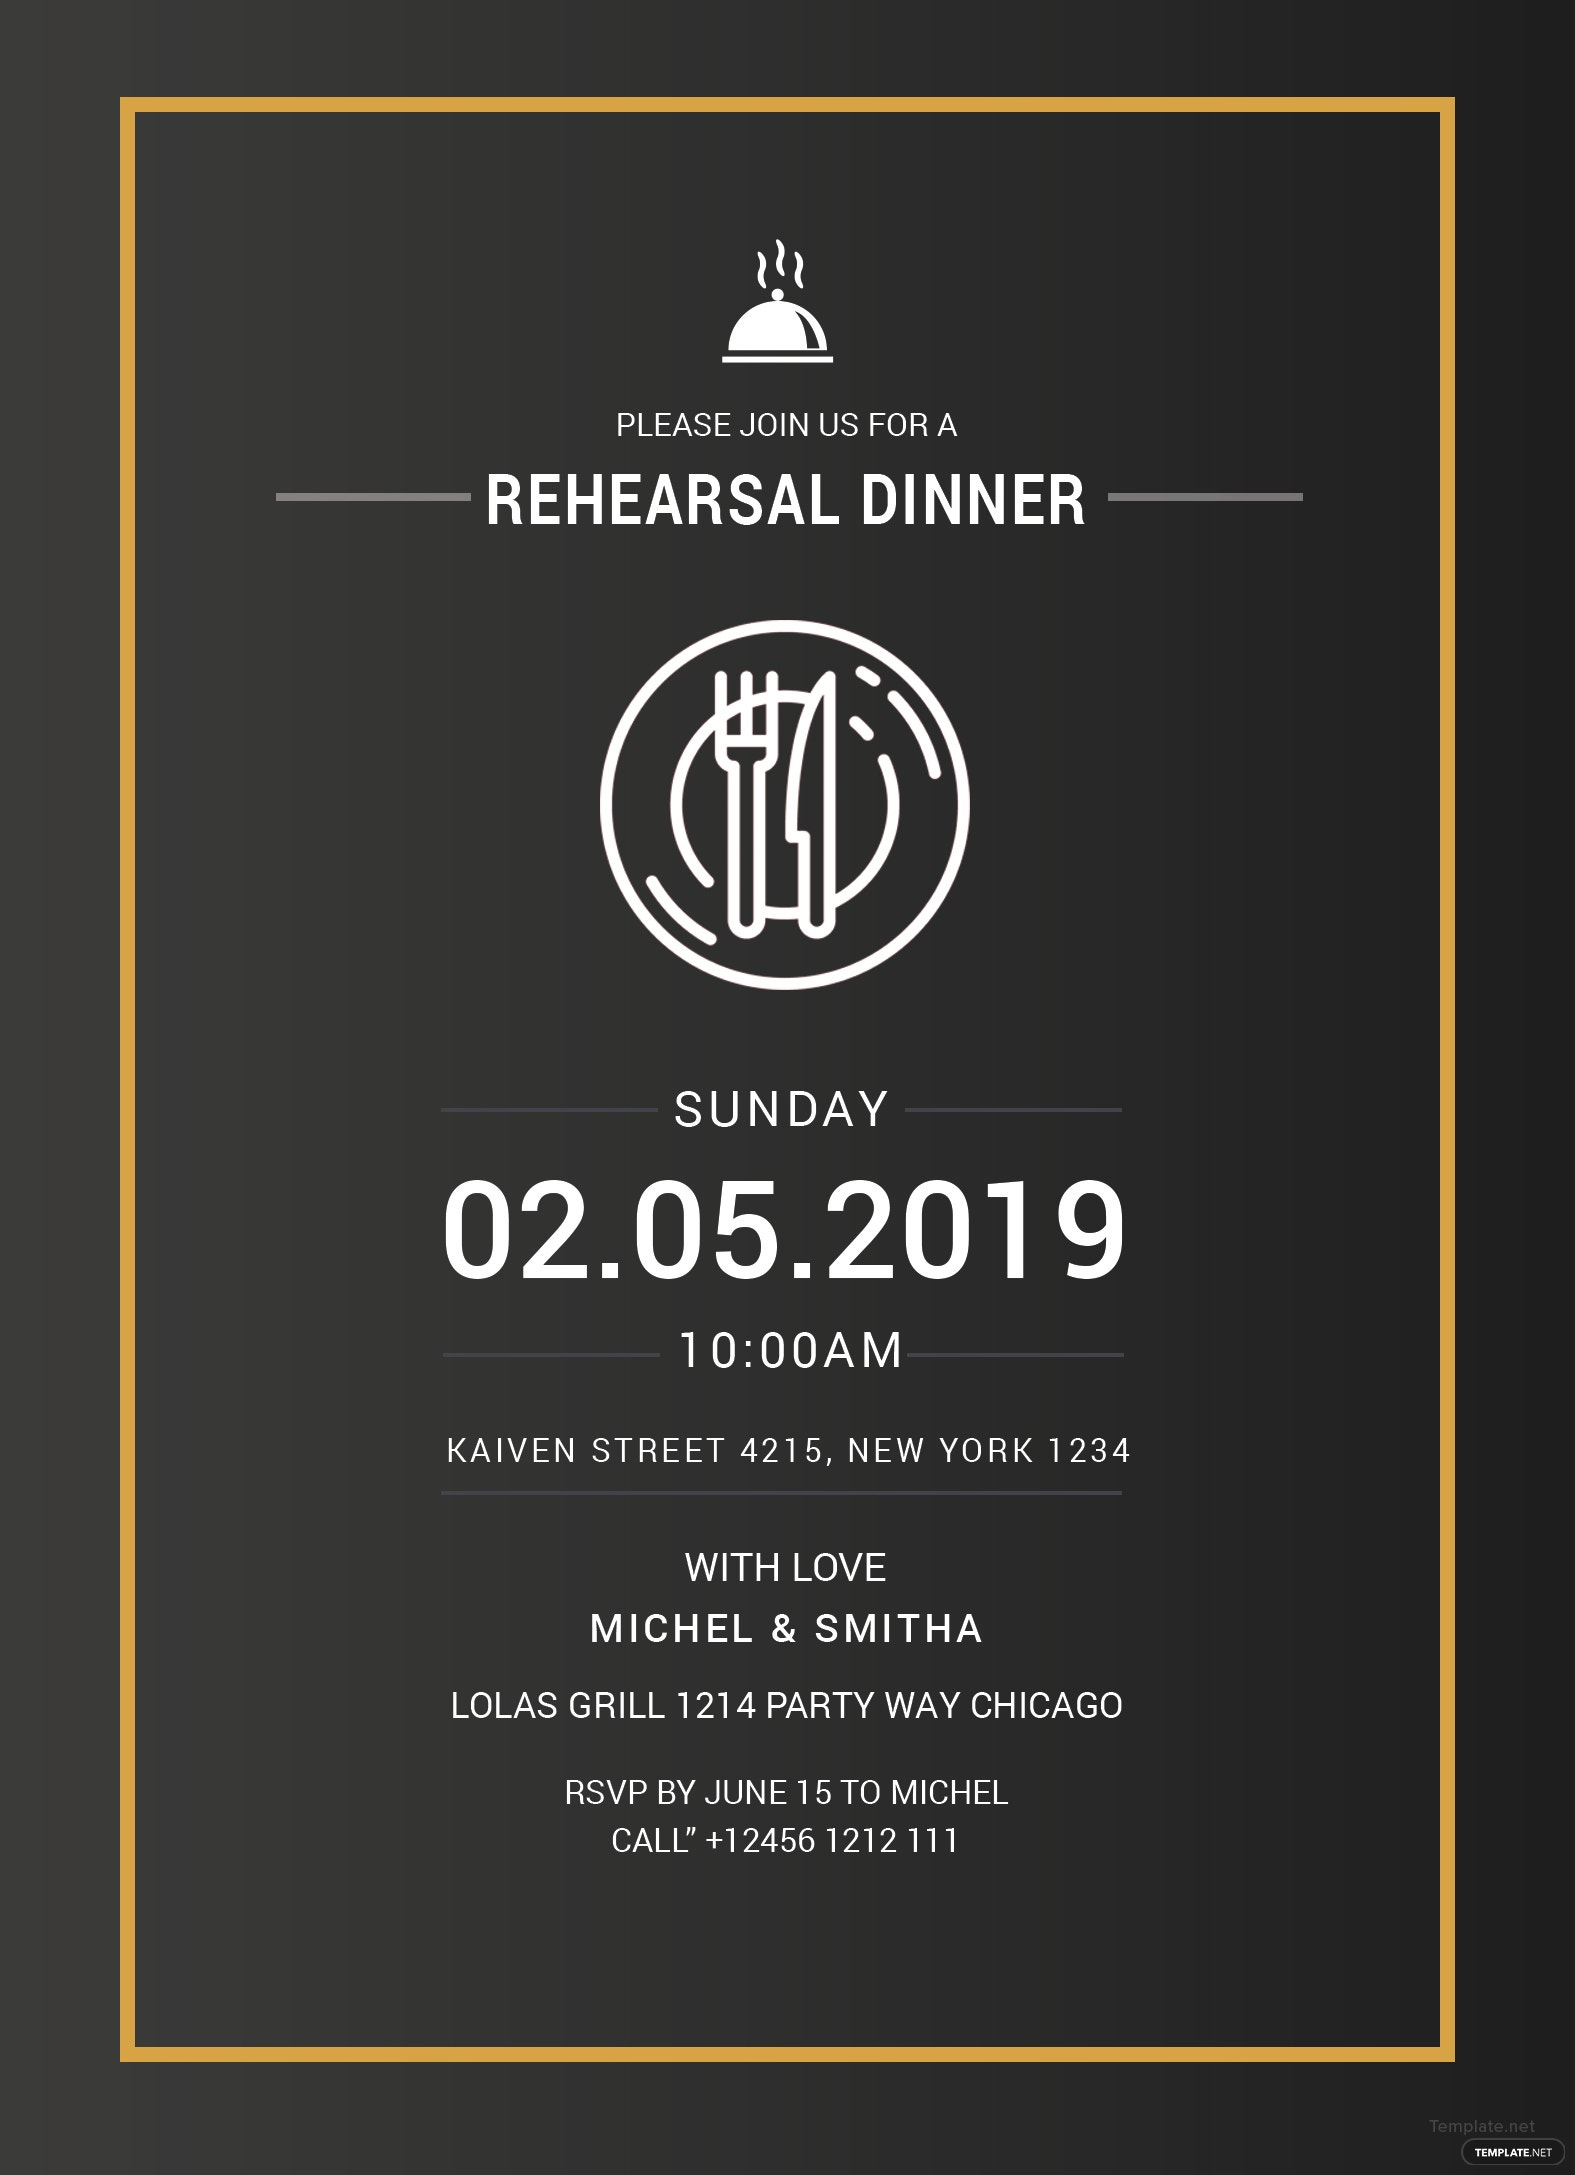 free rehearsal dinner party invitation template in adobe photoshop  illustrator